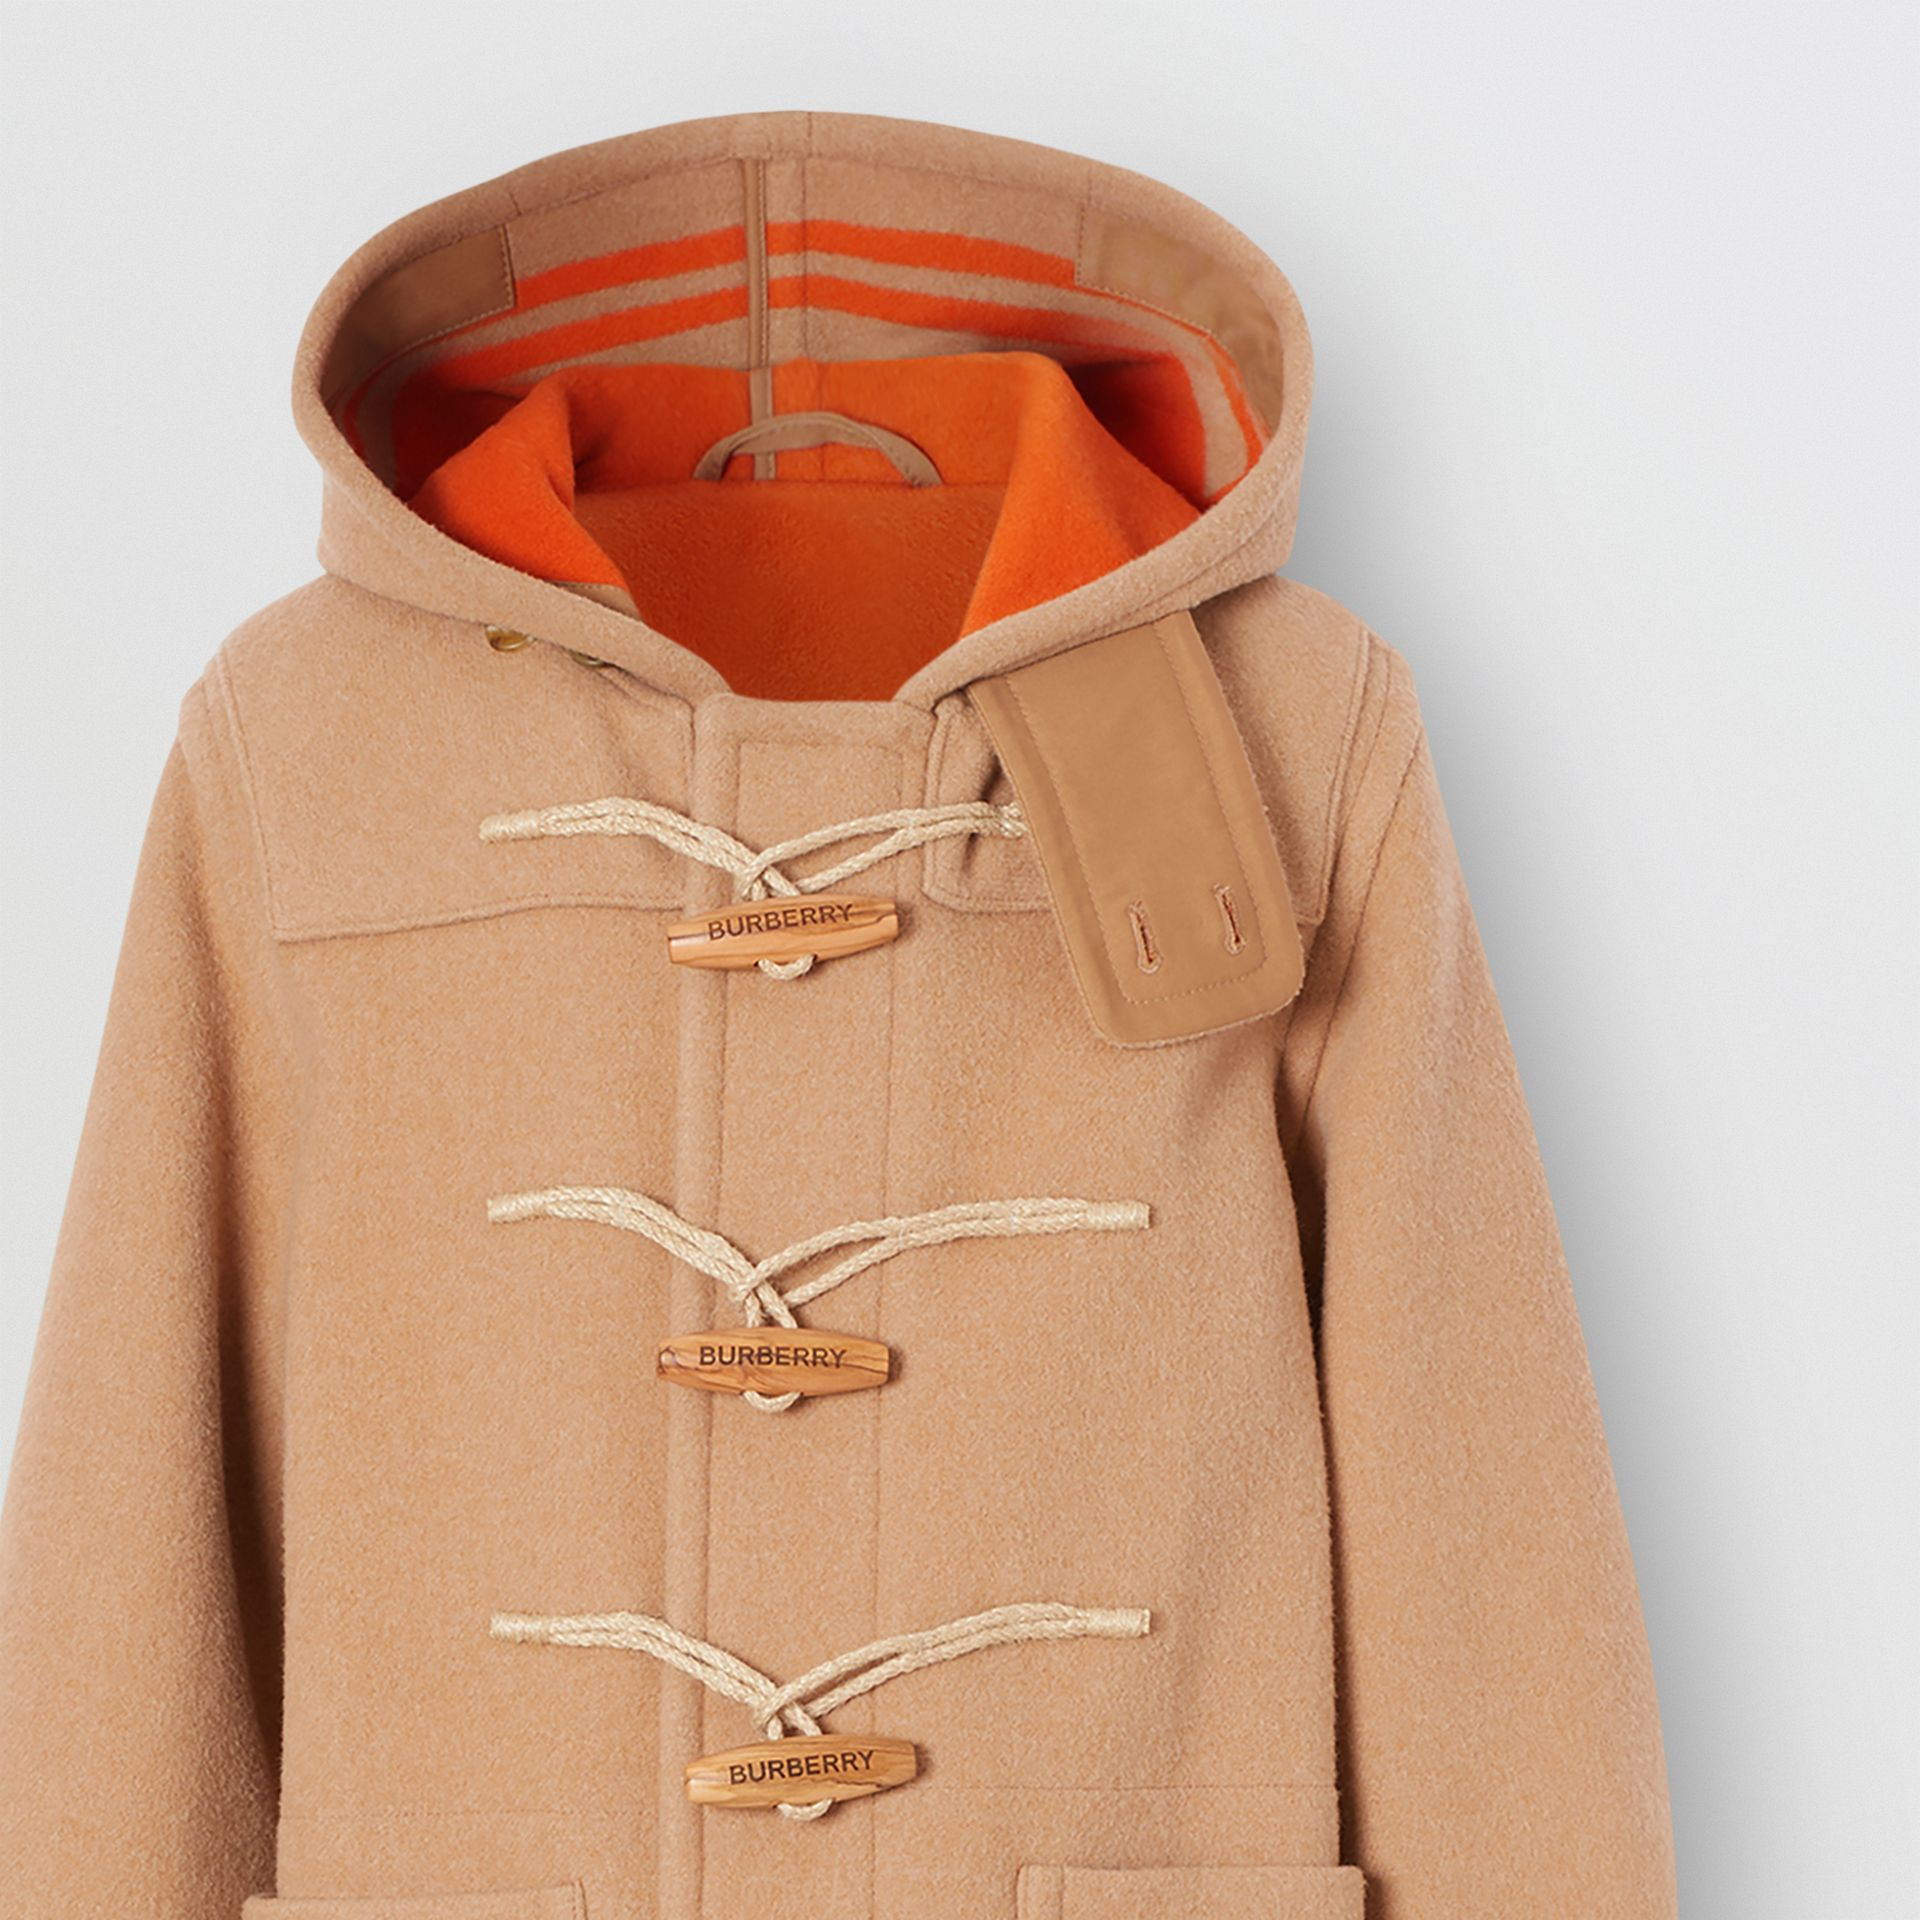 Striped Double-faced Wool Duffle Coat in Camel/orange - Men | Burberry United Kingdom - gallery image 2